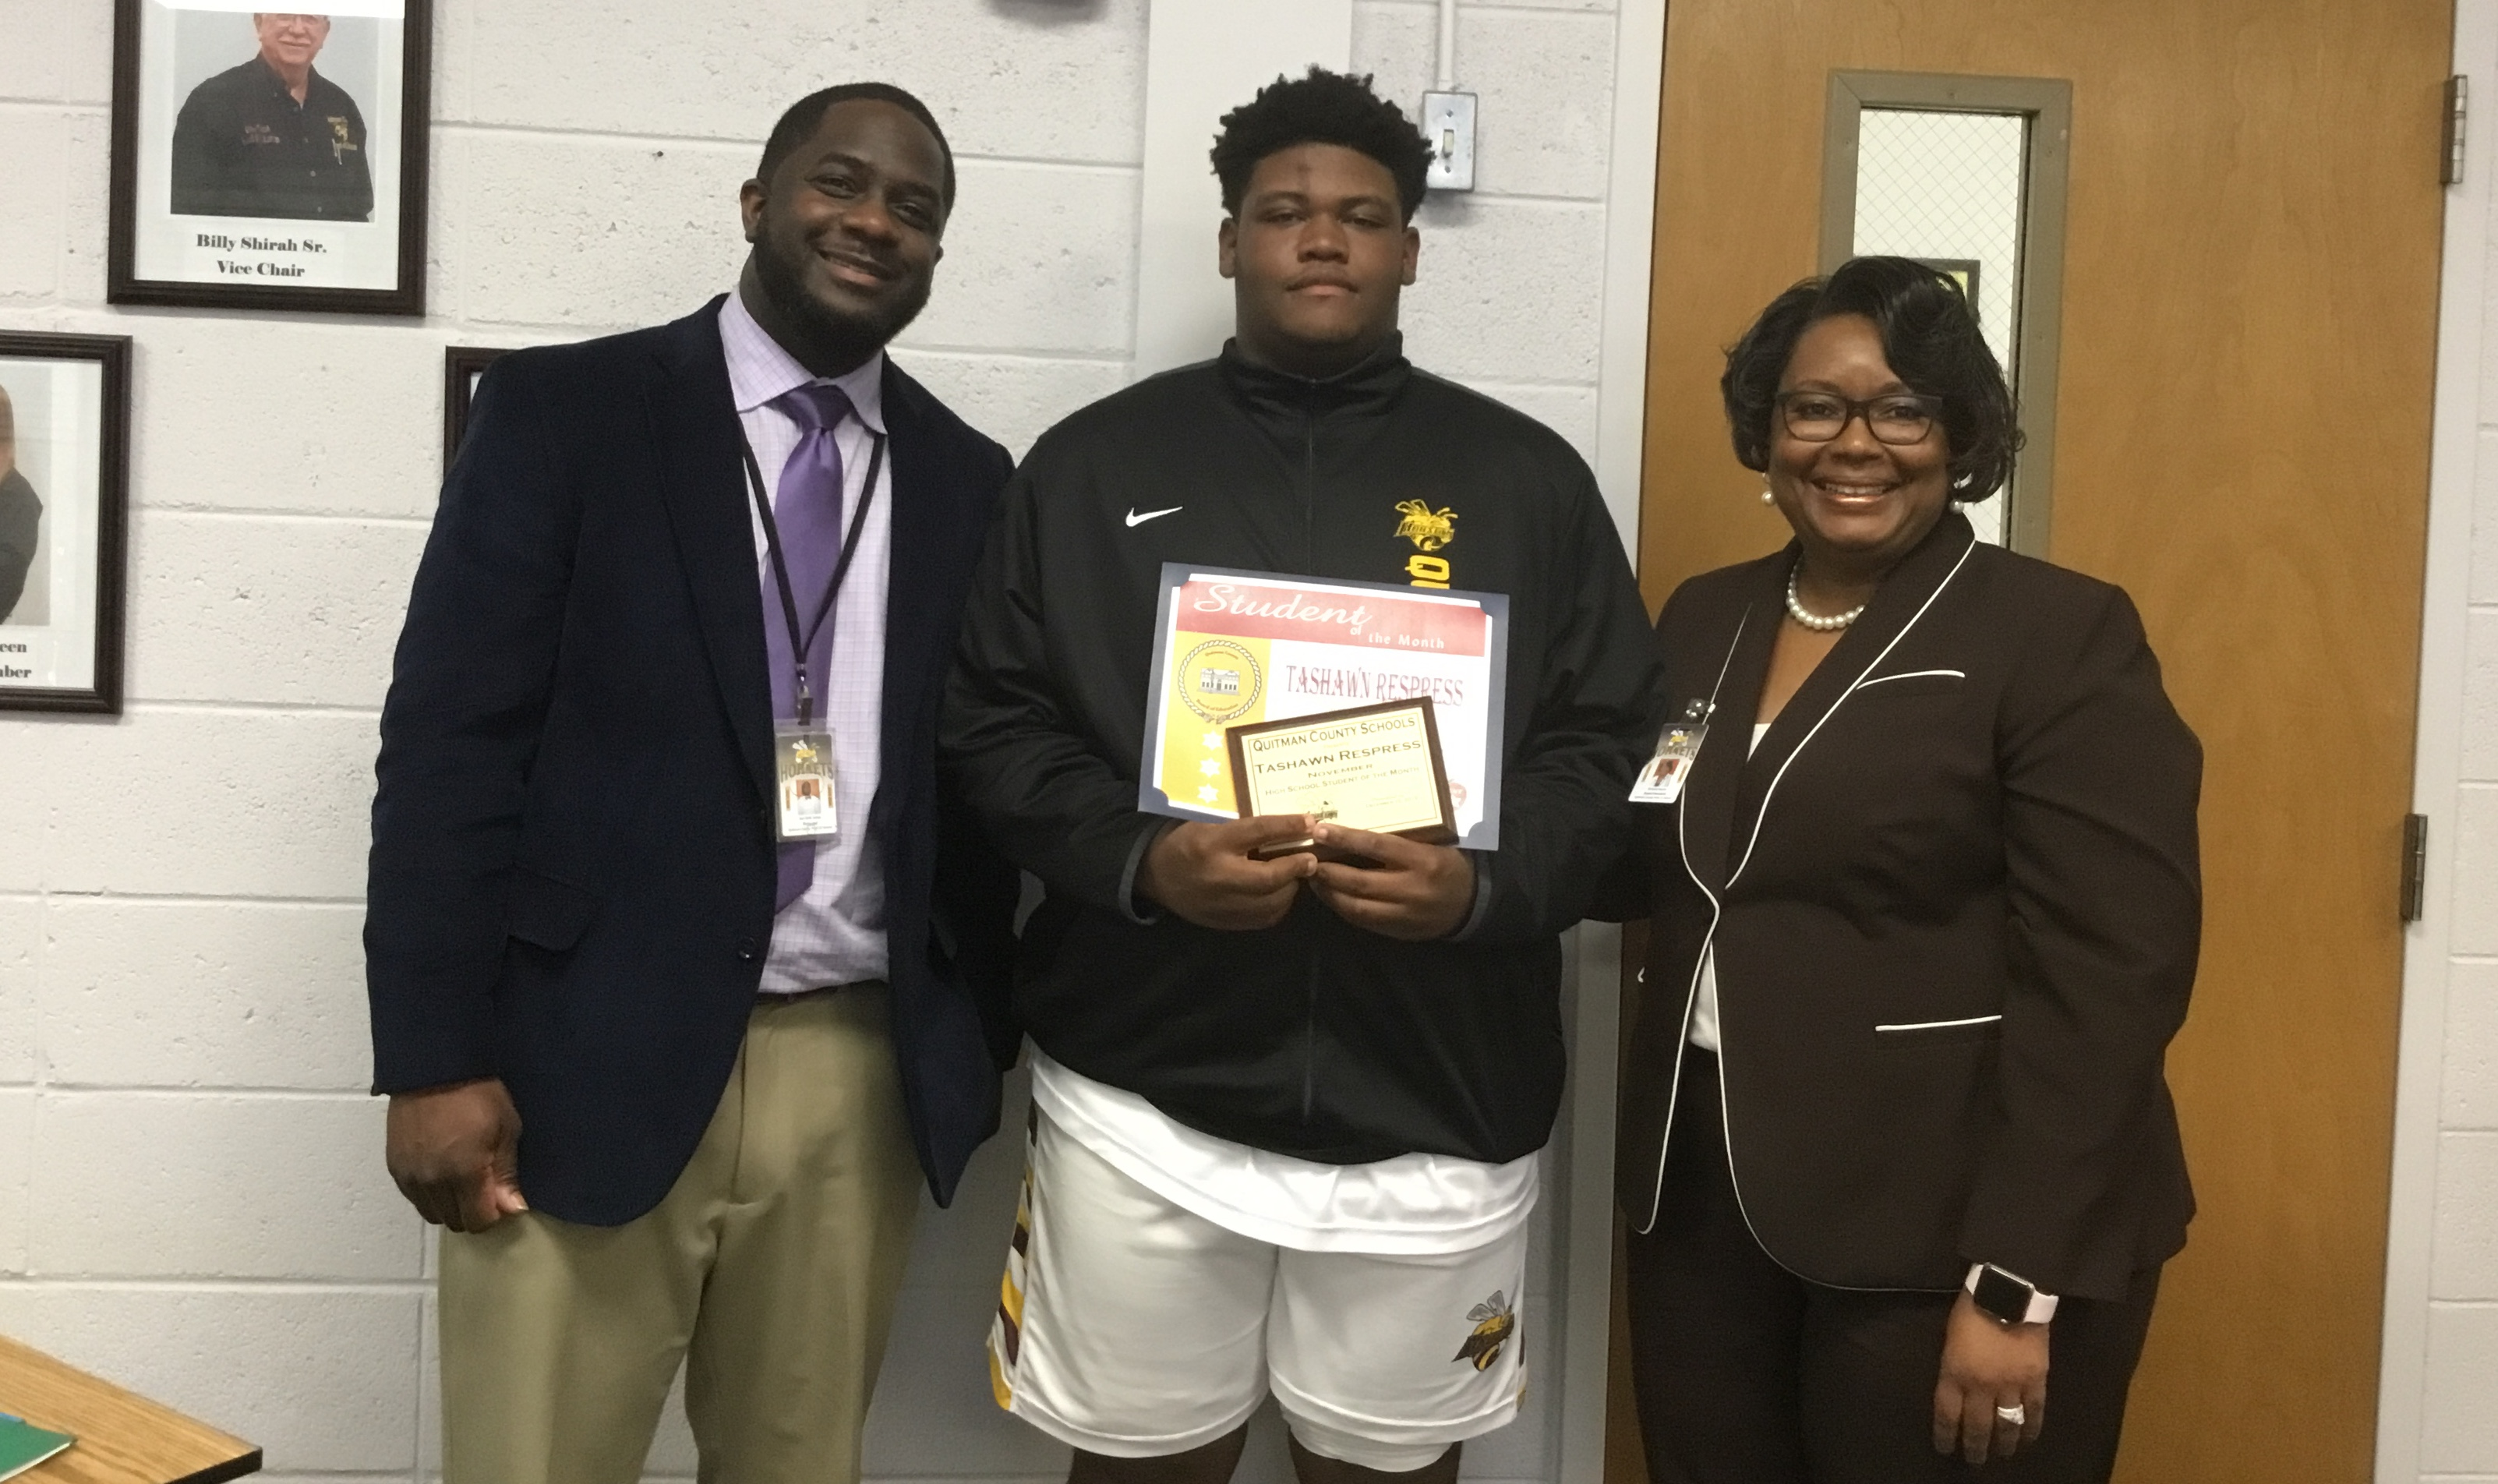 December Board Meeting - November 2019 HS Student of the Month - Tashawn Respress